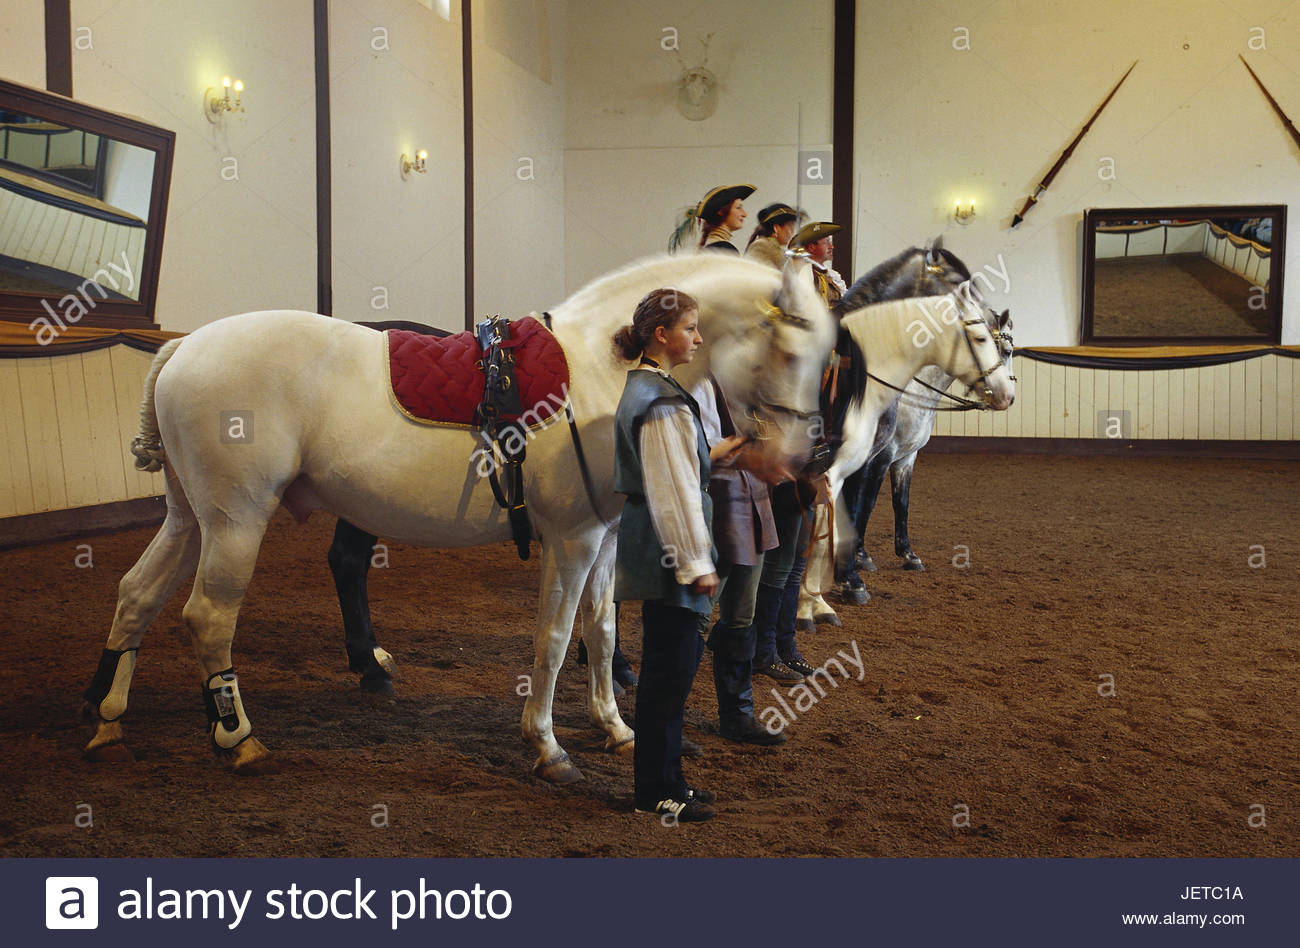 Germany, Lower Saxony, Bueckeburg, princely court riding academy, riding showing, bleed, preview, riding hall, Weser - Stock Image